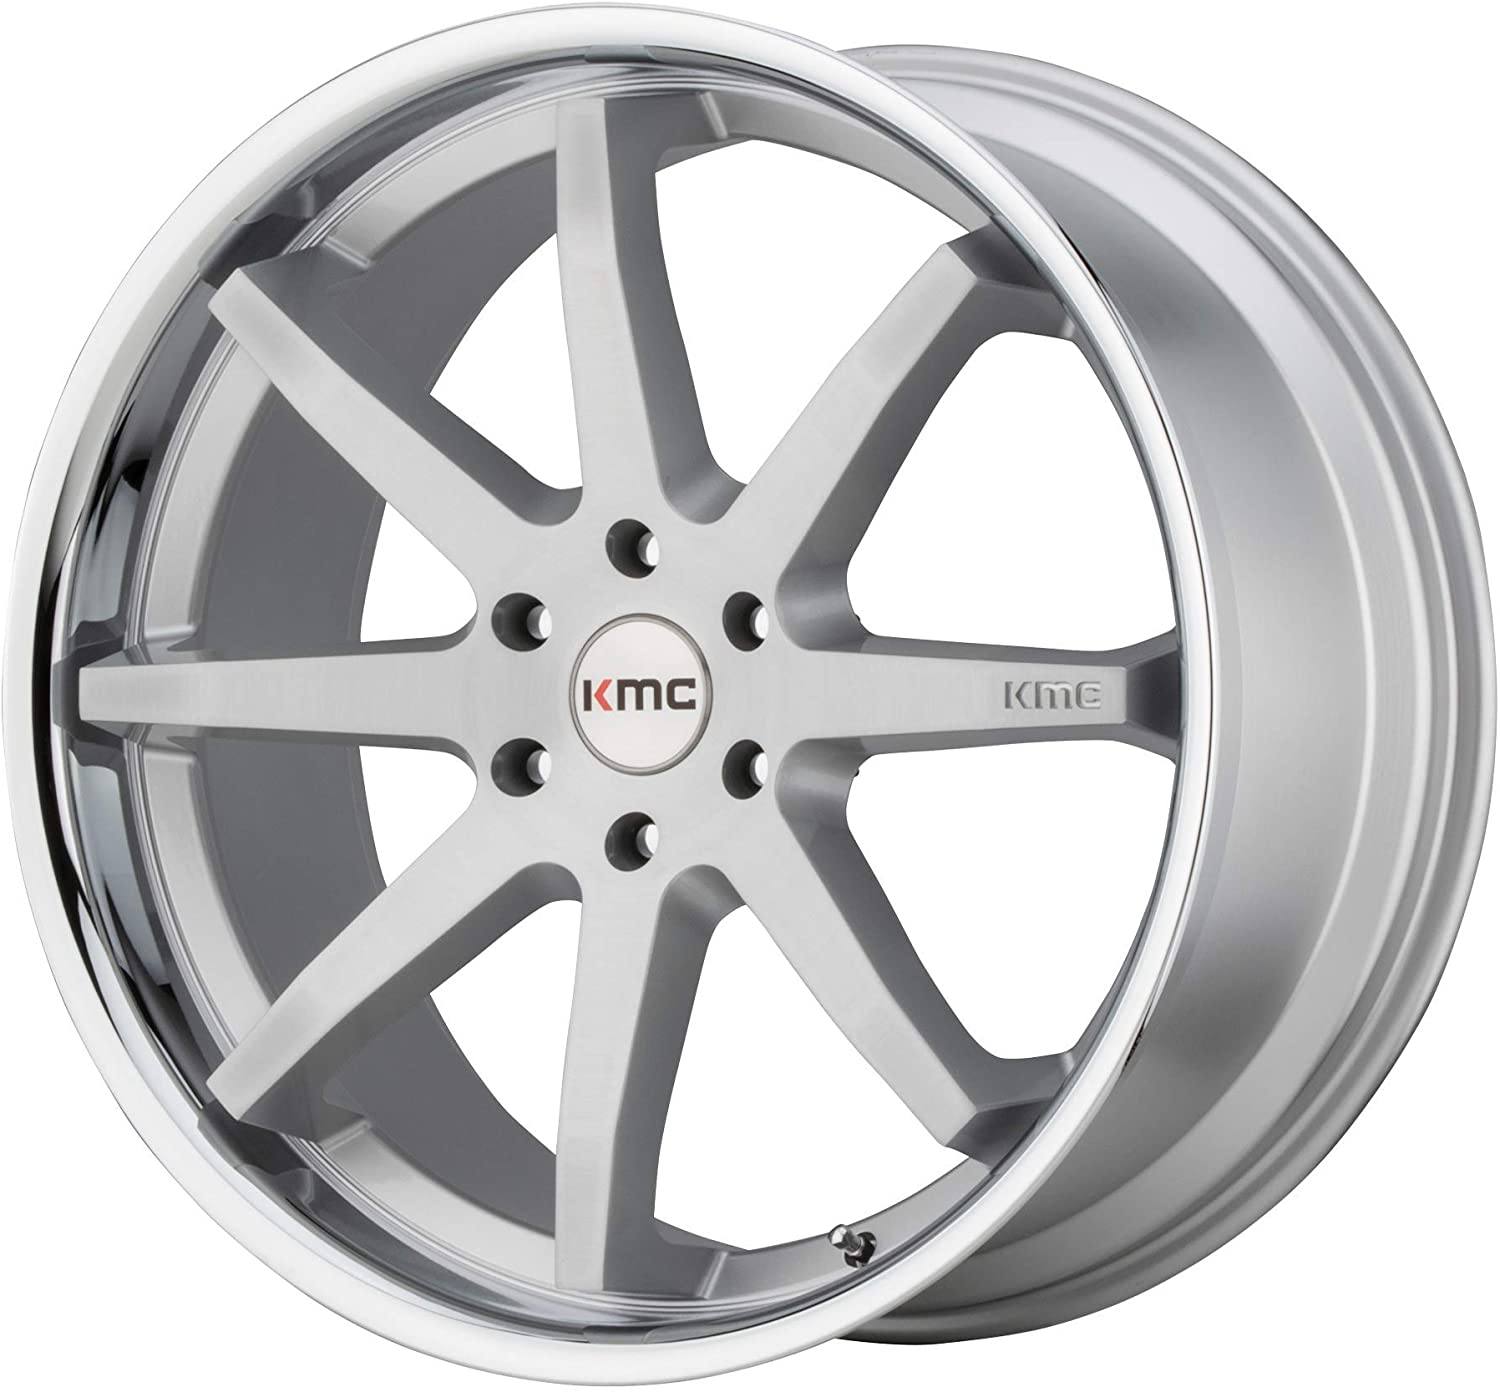 Deal on Wheels KMC Reverb Brushed Silver W/Chrome Lip Reverb 22x9.5 6x135.00 Brushed Silver W/Chrome Lip (30 mm) Wheel